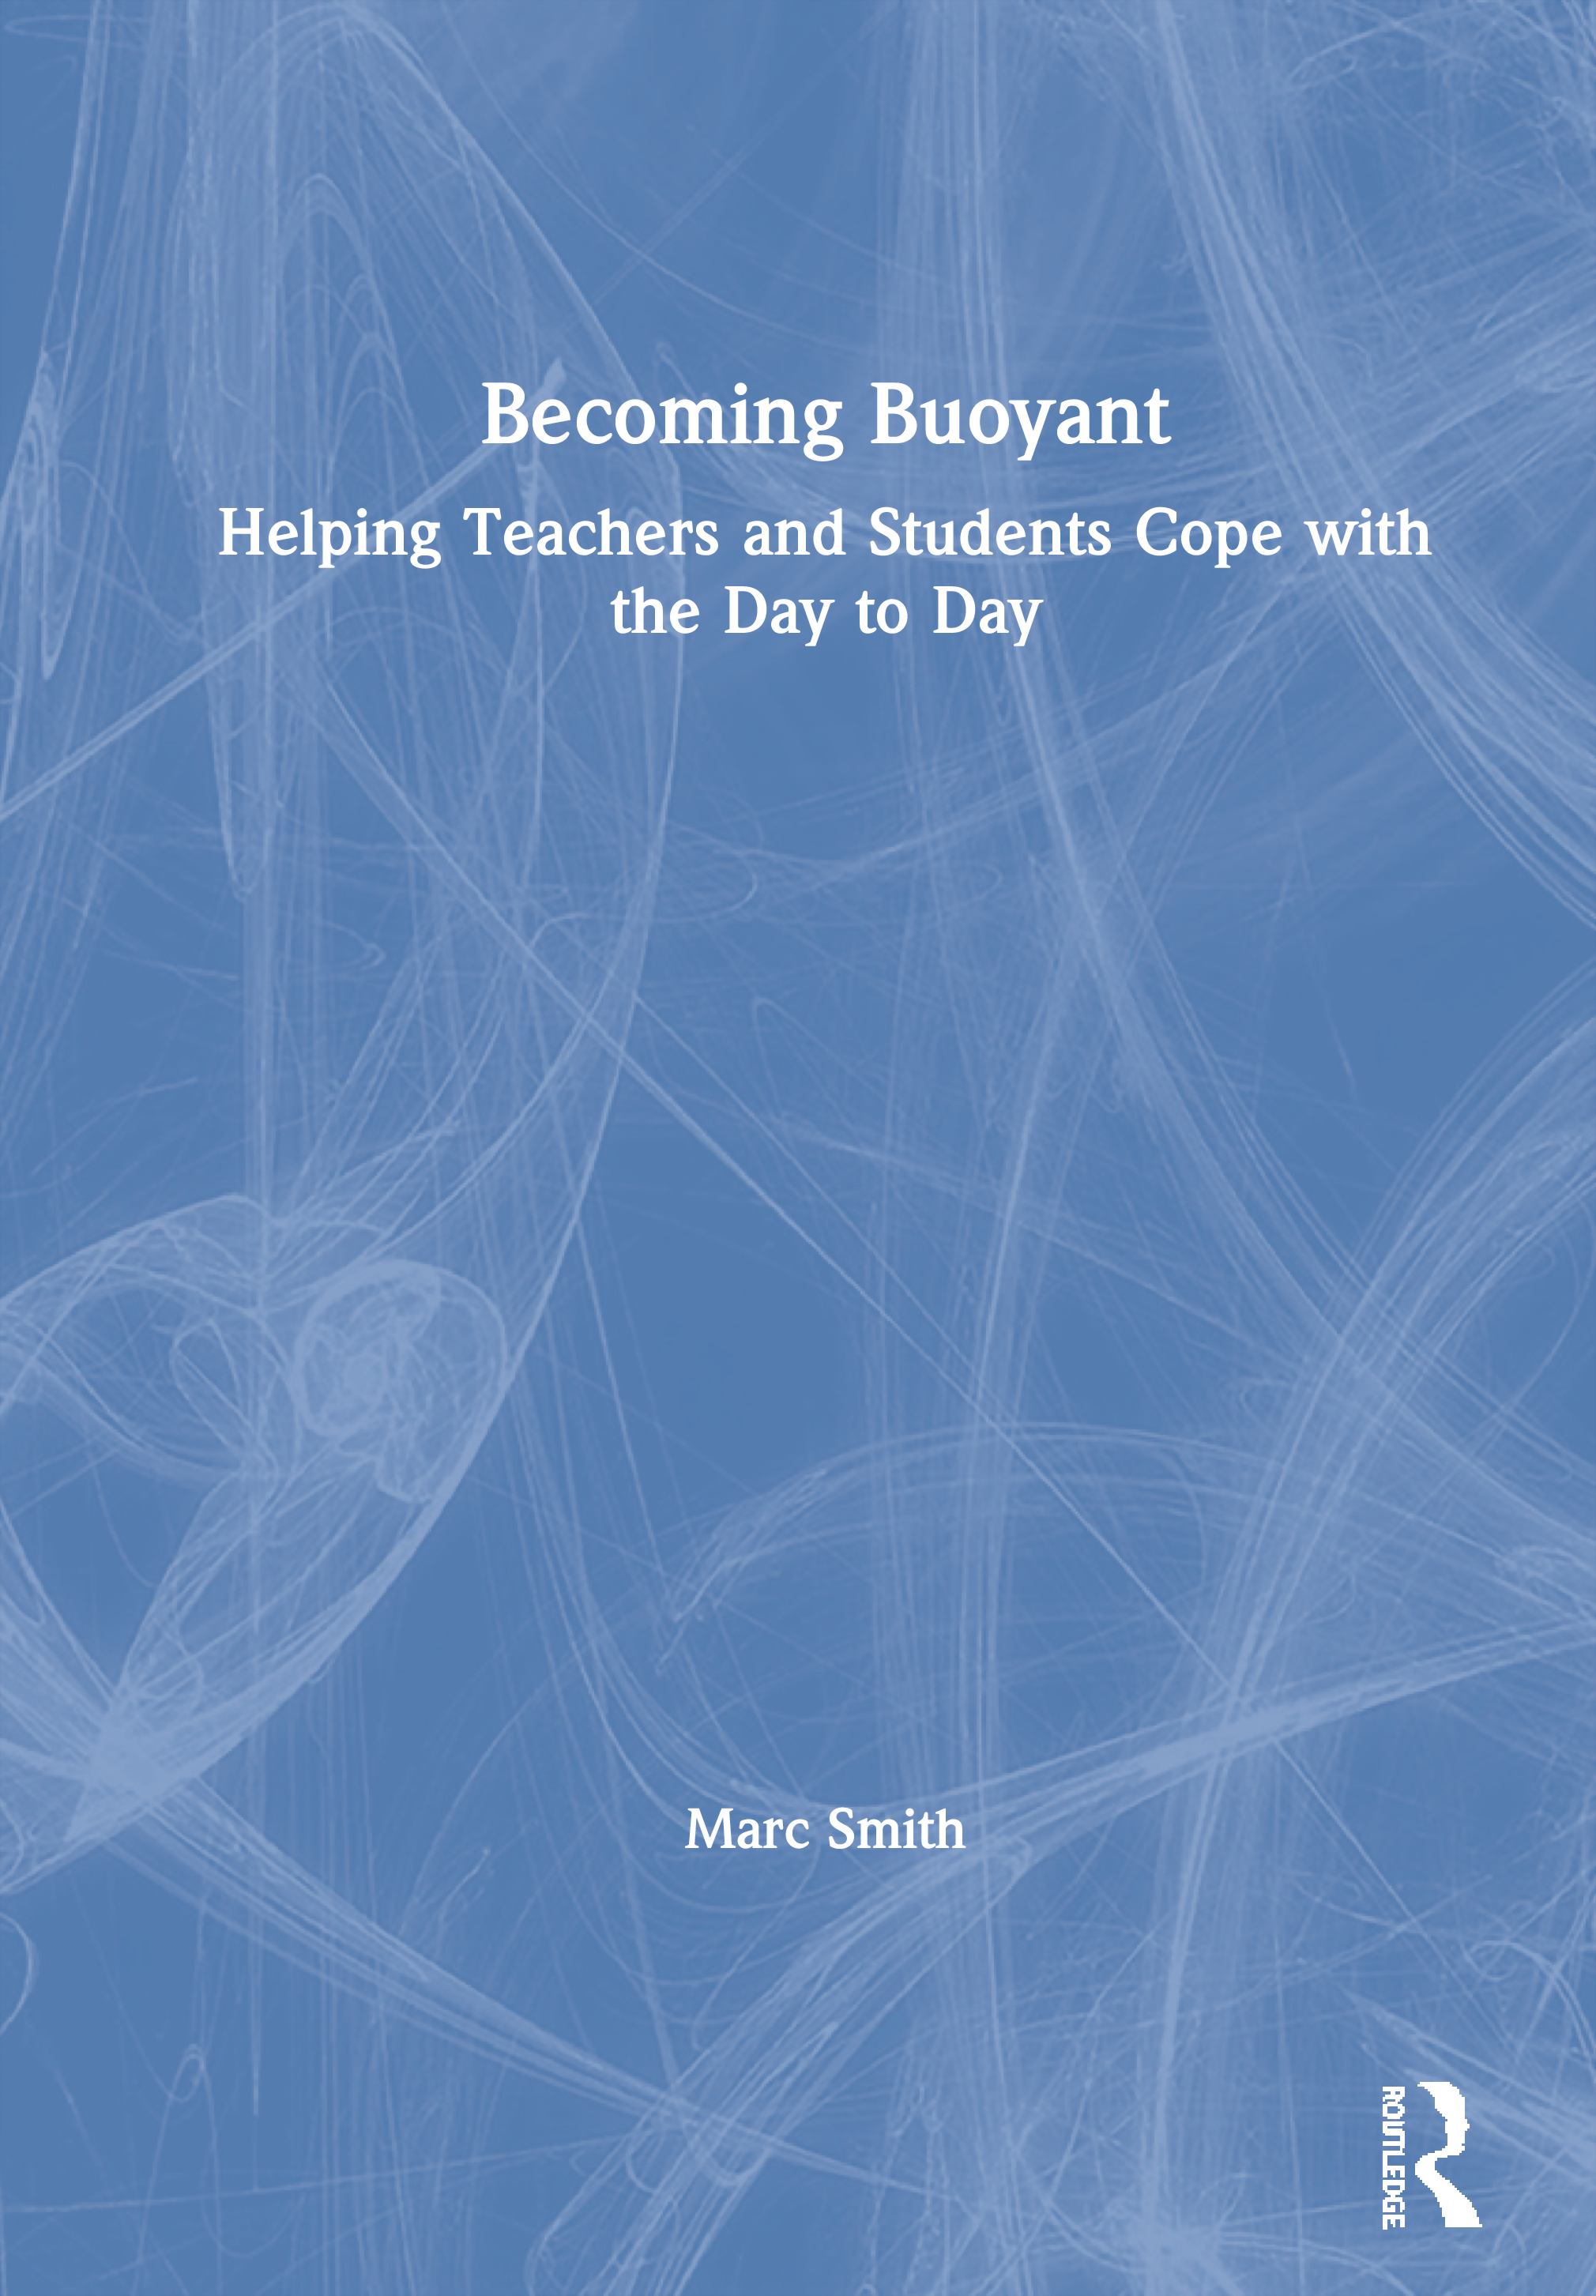 Becoming Buoyant: Helping Teachers and Students Cope with the Day to Day: 1st Edition (Paperback) book cover